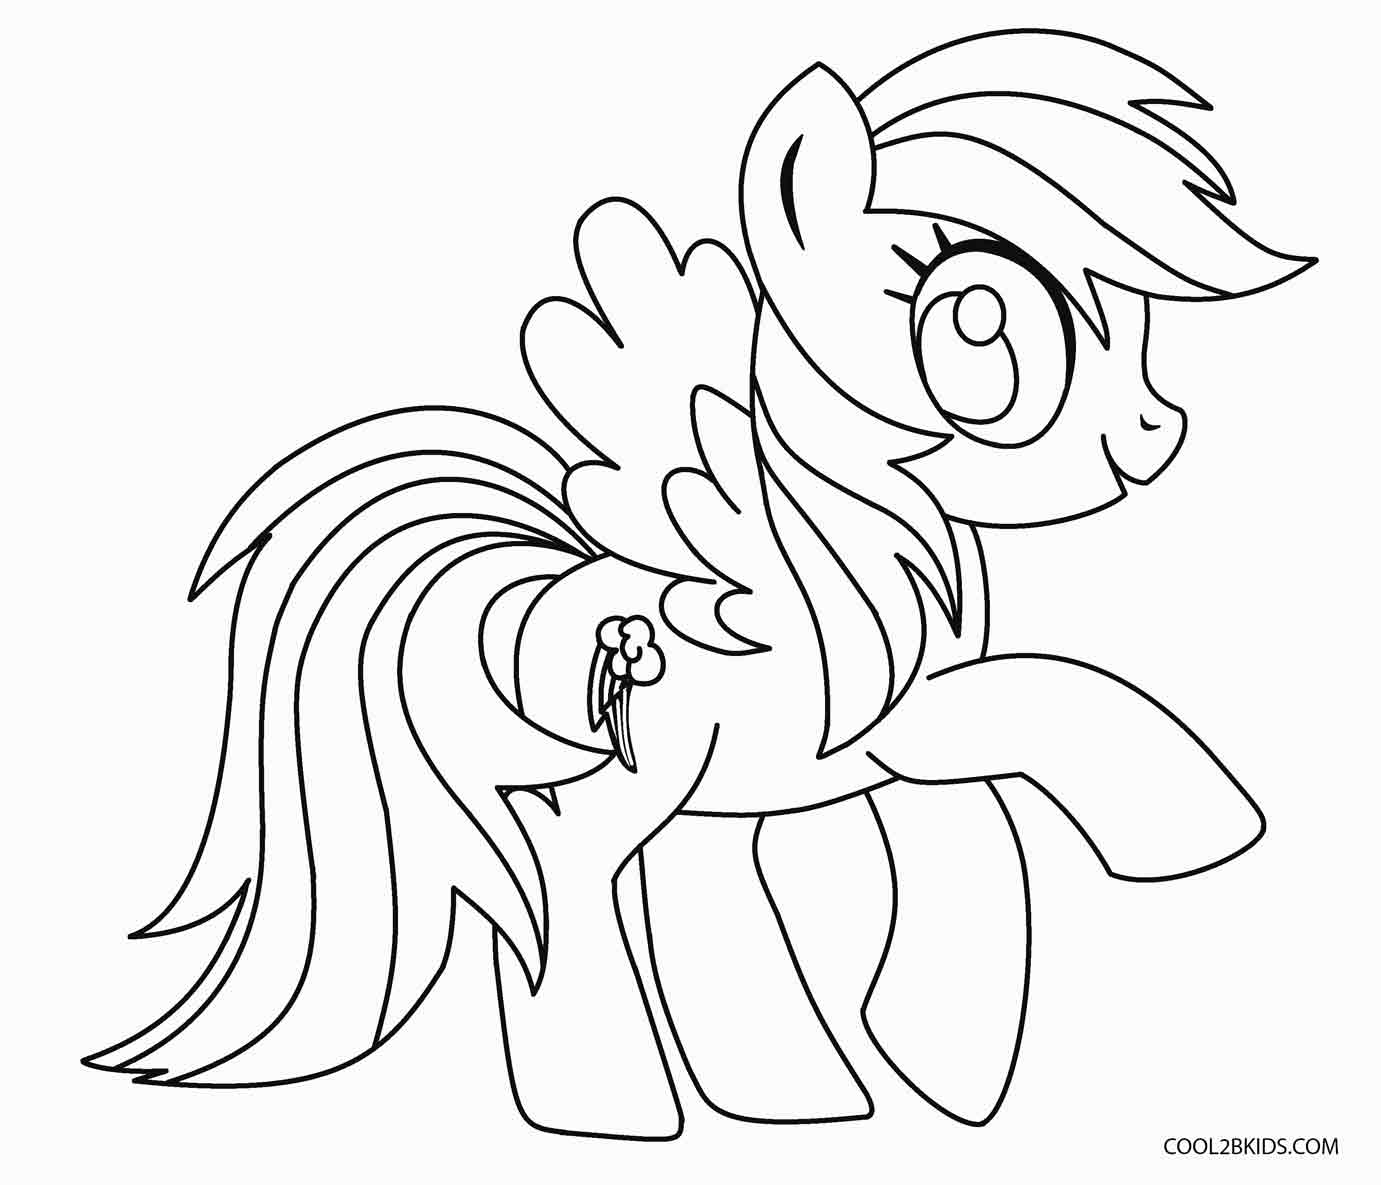 coloring sheets my little pony my little pony body outline sketch coloring page my coloring pony little sheets